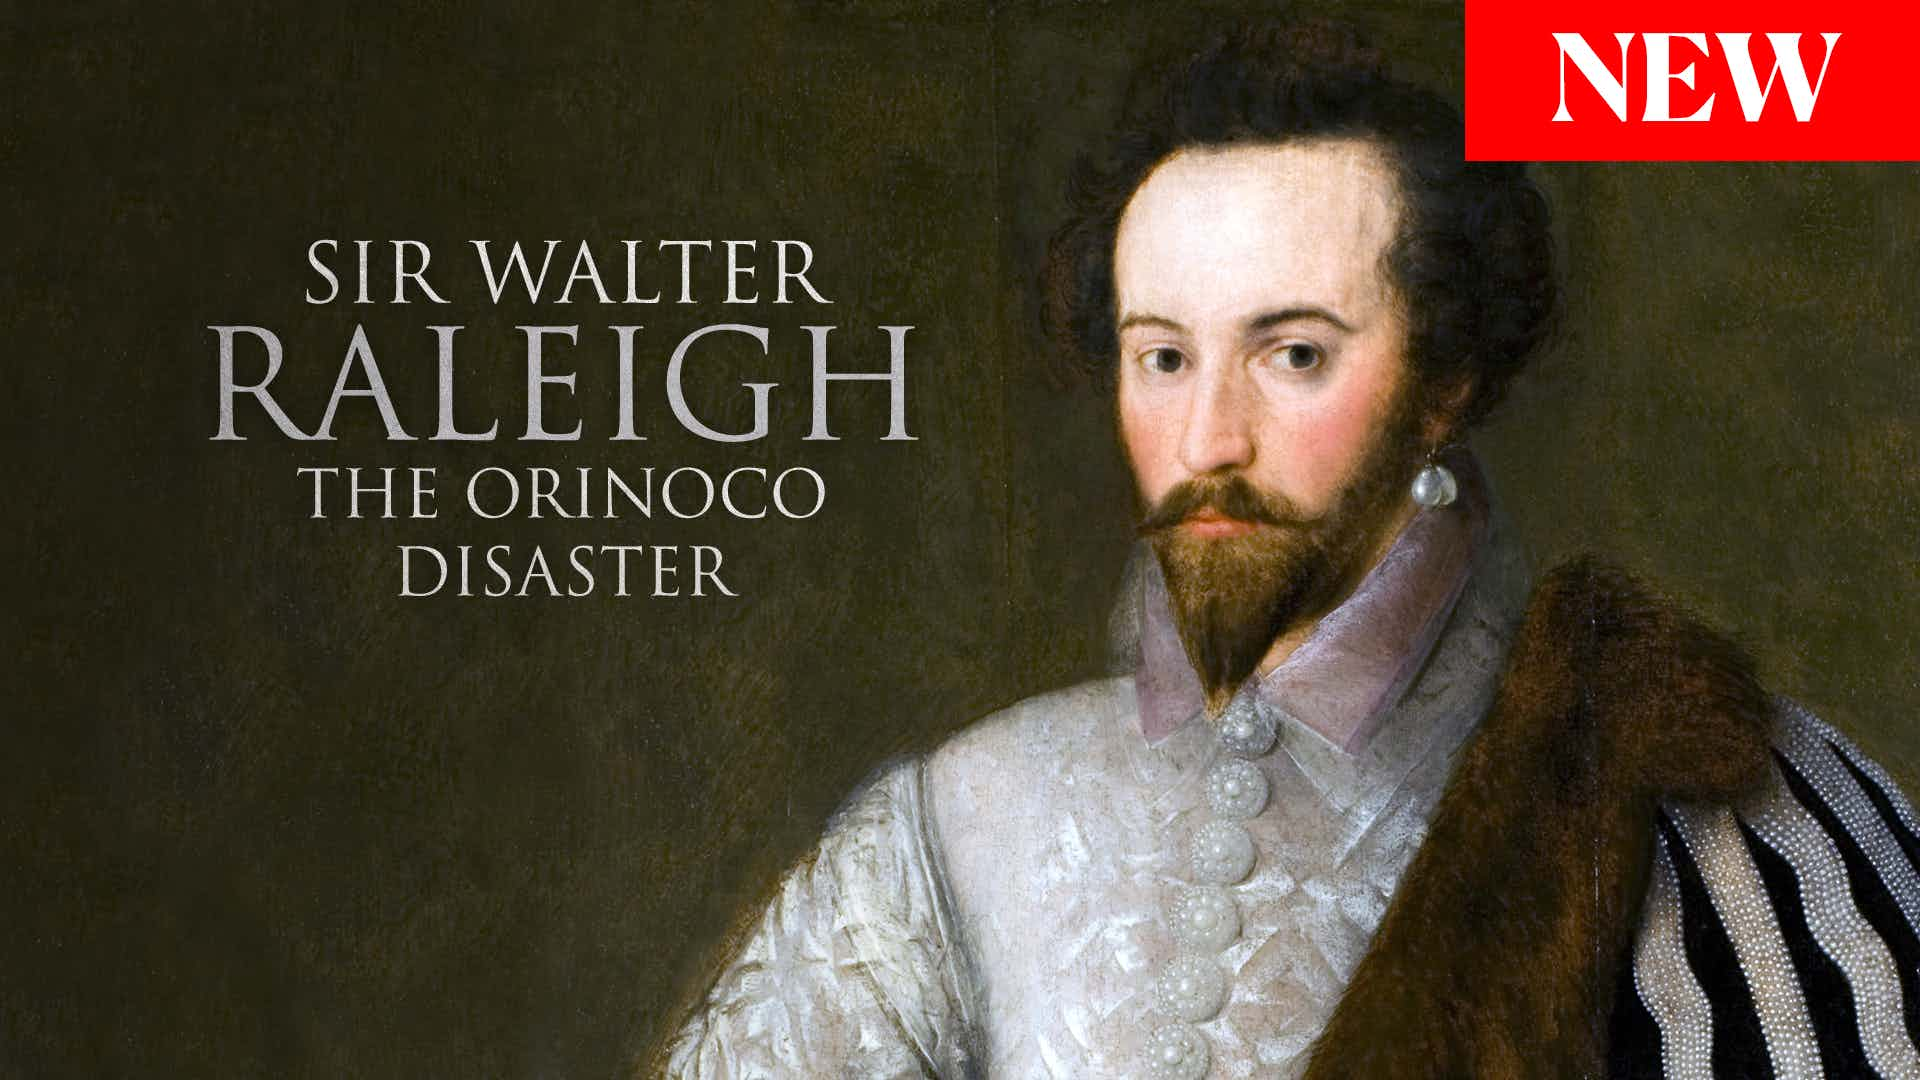 Sir Walter Raleigh and the Orinoco disaster